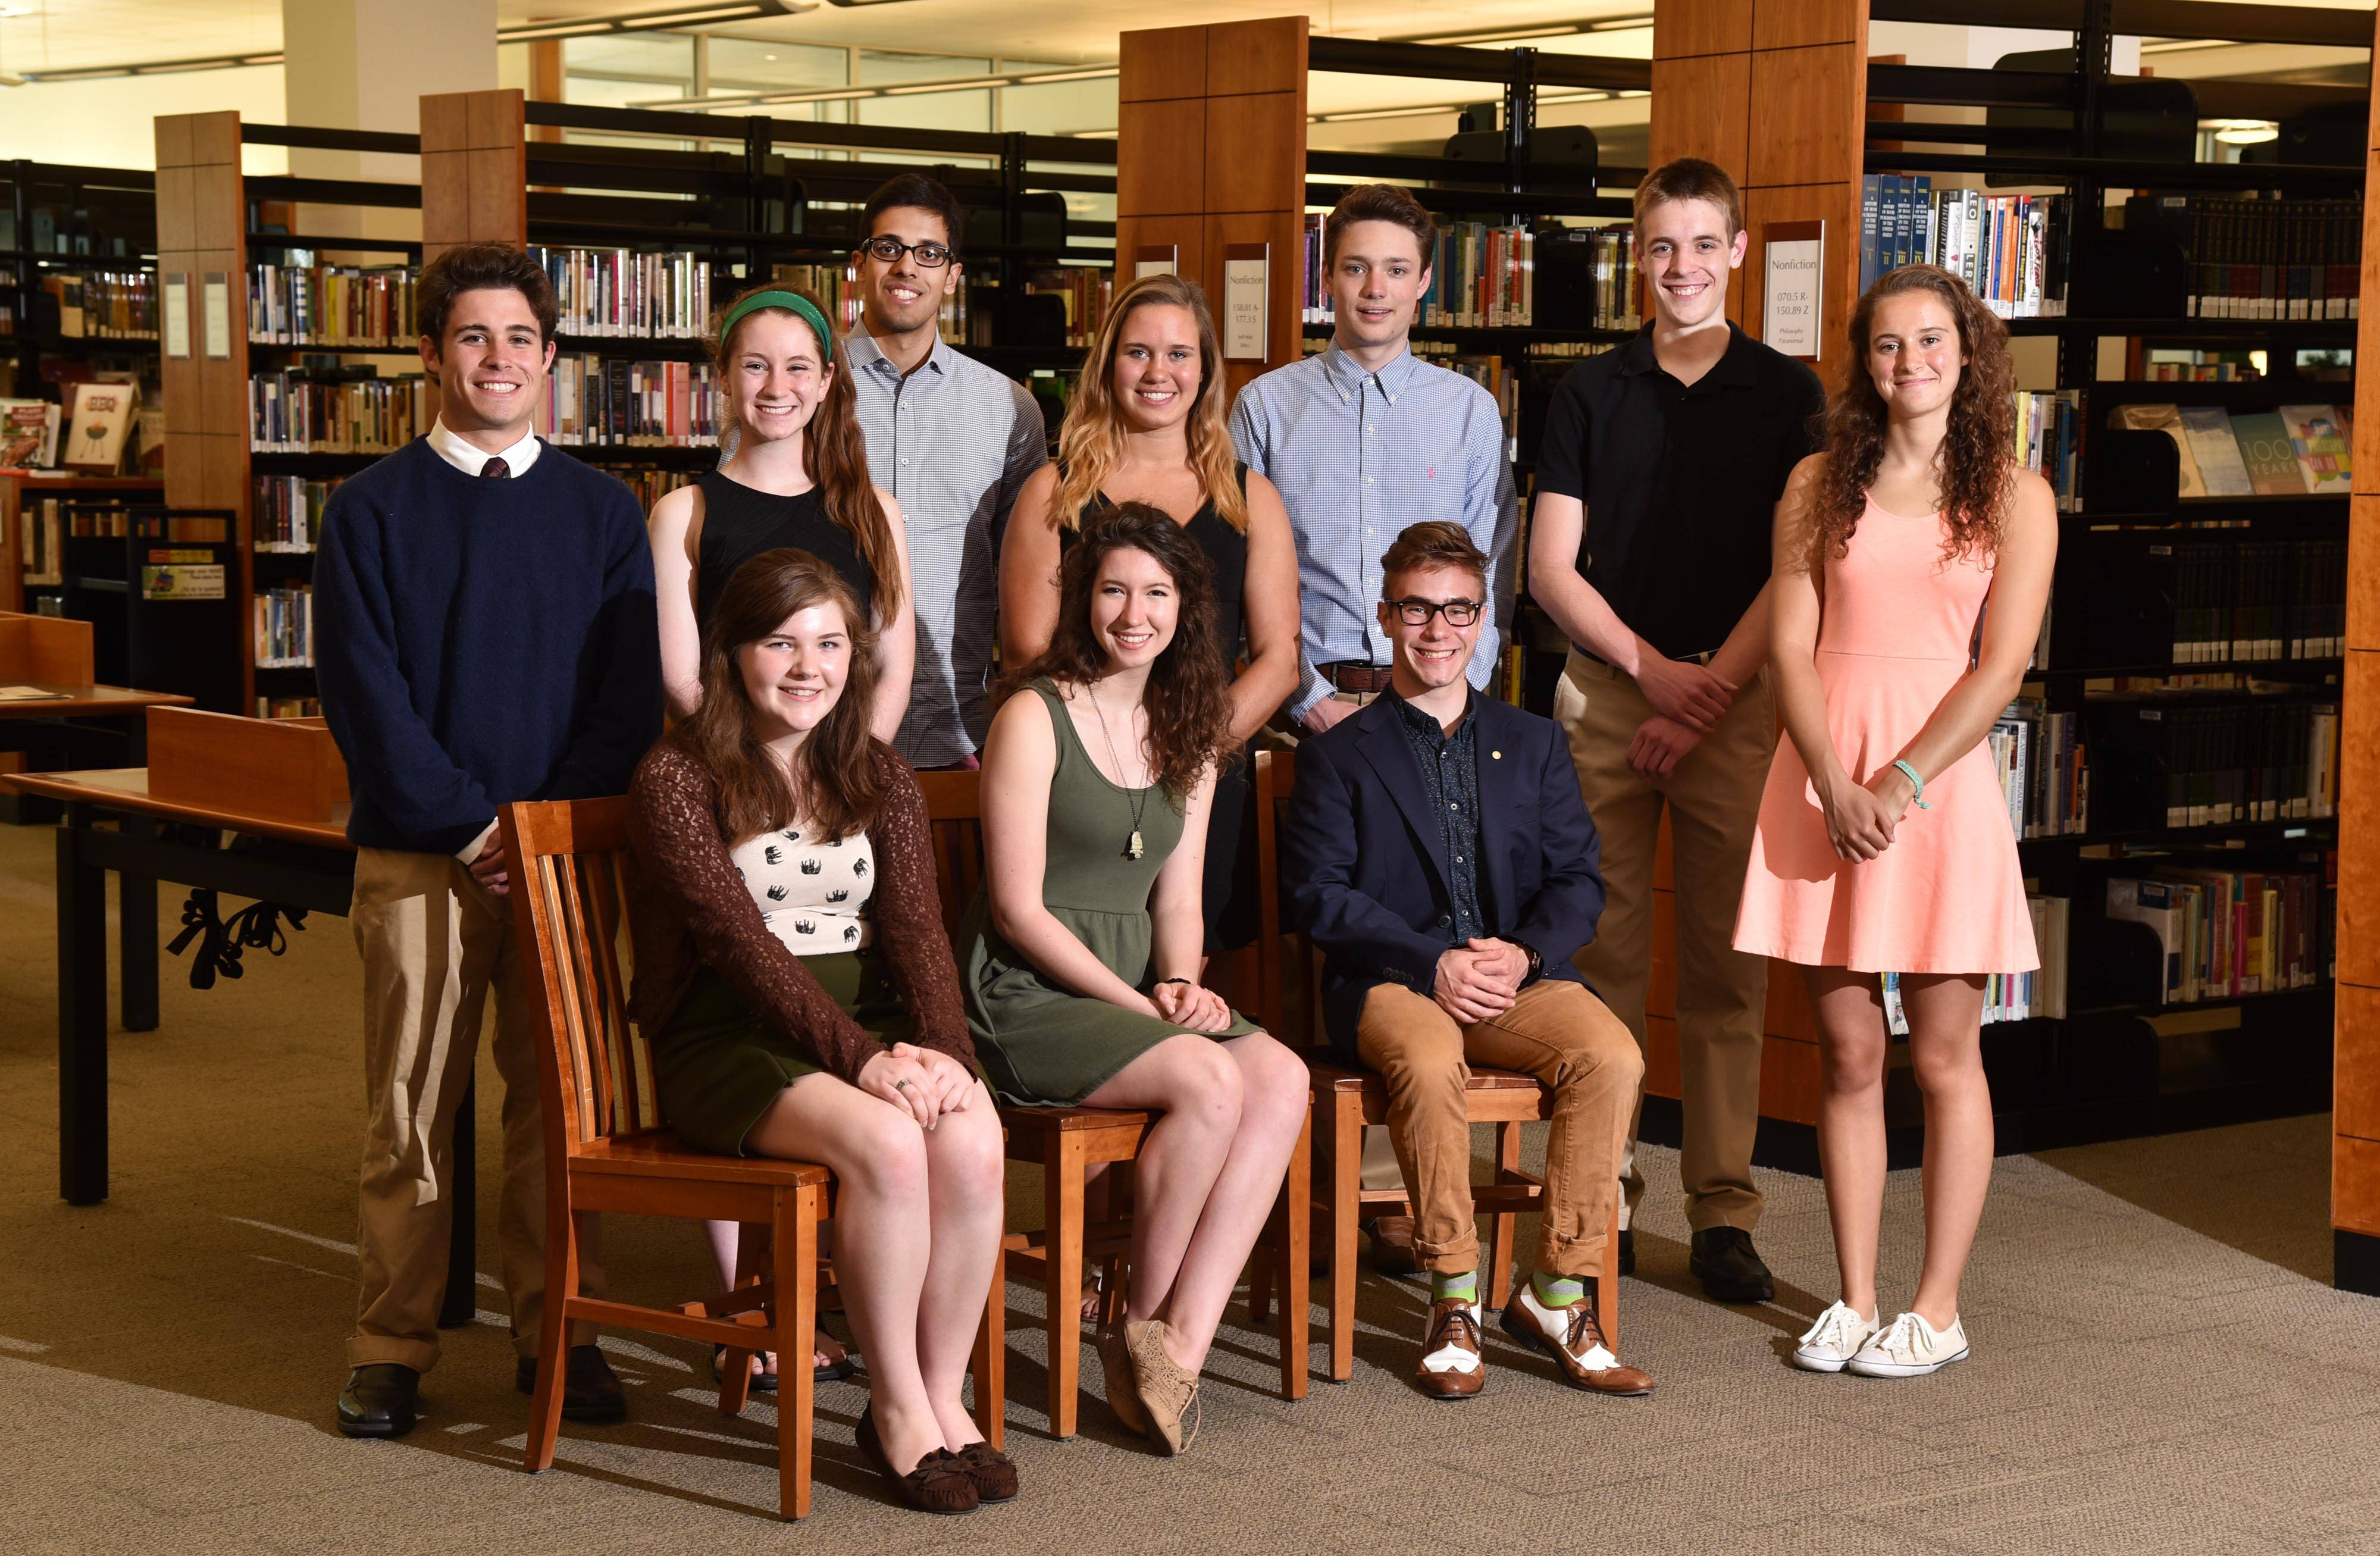 Members of the Daily Herald Fox Valley Academic Team are, from left, sitting, Amelia Deering, Elgin Academy; Nicole Palmer, St. Charles North High School; Ryan Thornton, Marmion Academy; and from left, standing, Maximilian Troyke, Elgin High School; Caitlin O'Callaghan, Illinois Math and Science Academy; Eshan Mehrotra, Illinois Math and Science Academy; Amanda Rose Drobek, St. Edward Central Catholic High School; Jacob Fiedler, Marian Central Catholic High School; Alan Koval, St. Charles East High School; and Maisy Feeley, Elgin Academy.